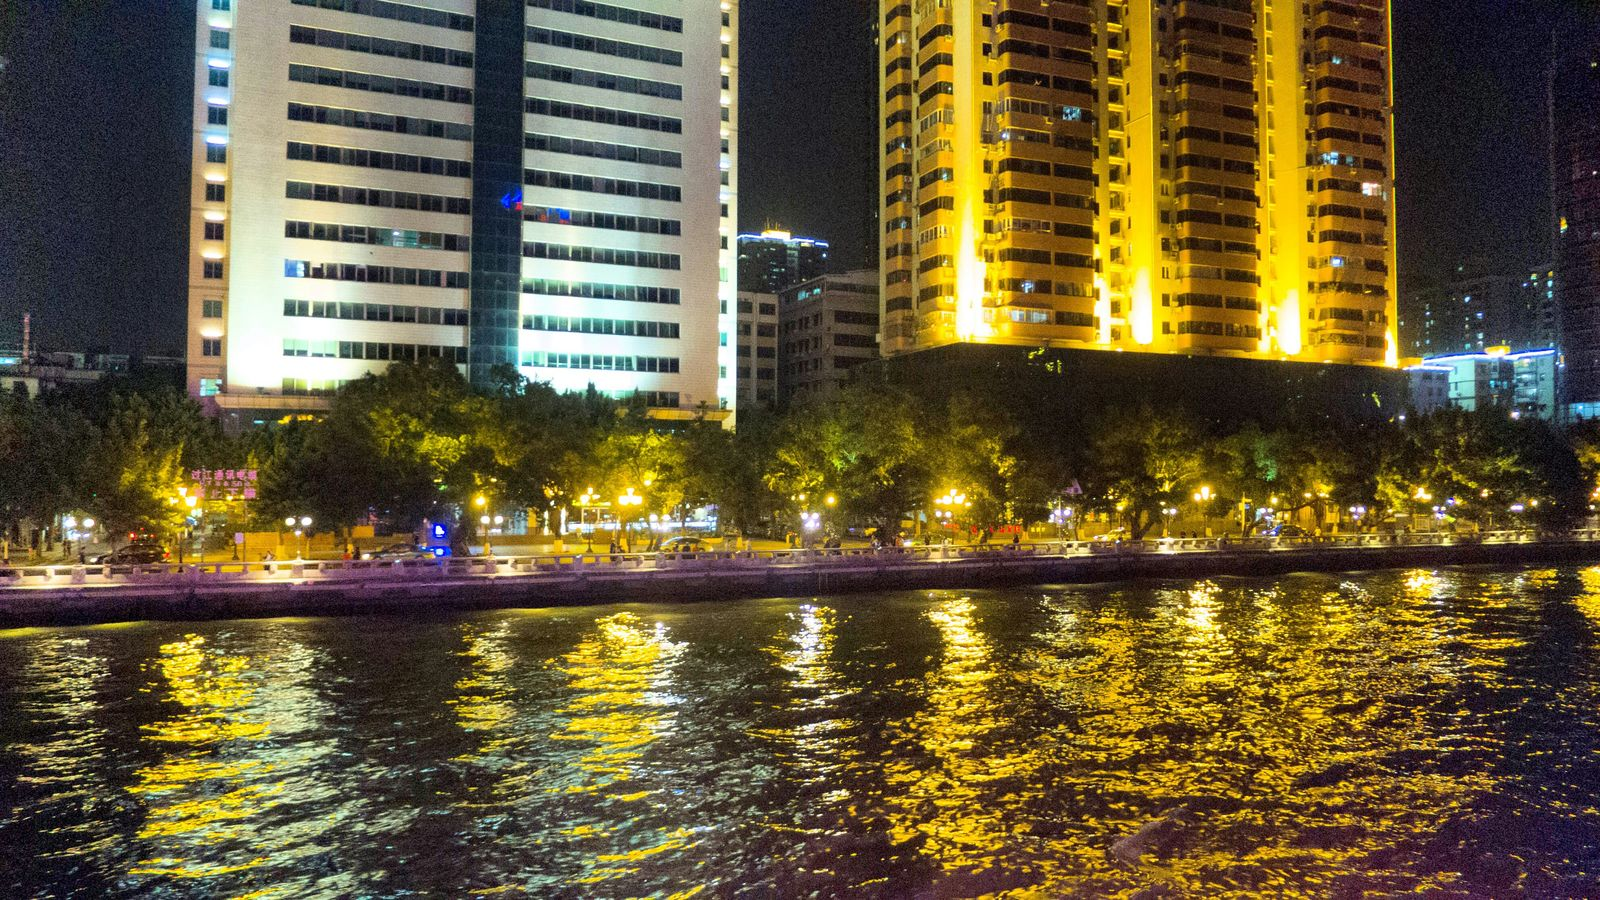 Lightroom My City Guangzhou Zhujiang River Water System From Landmark Hotel,beside Zhujiang River,the Buildings Are Great Scenery Of Guangzhou❤ Nightphotography Nightlife Hello World Autumn🍁🍁🍁 Autumn Collection